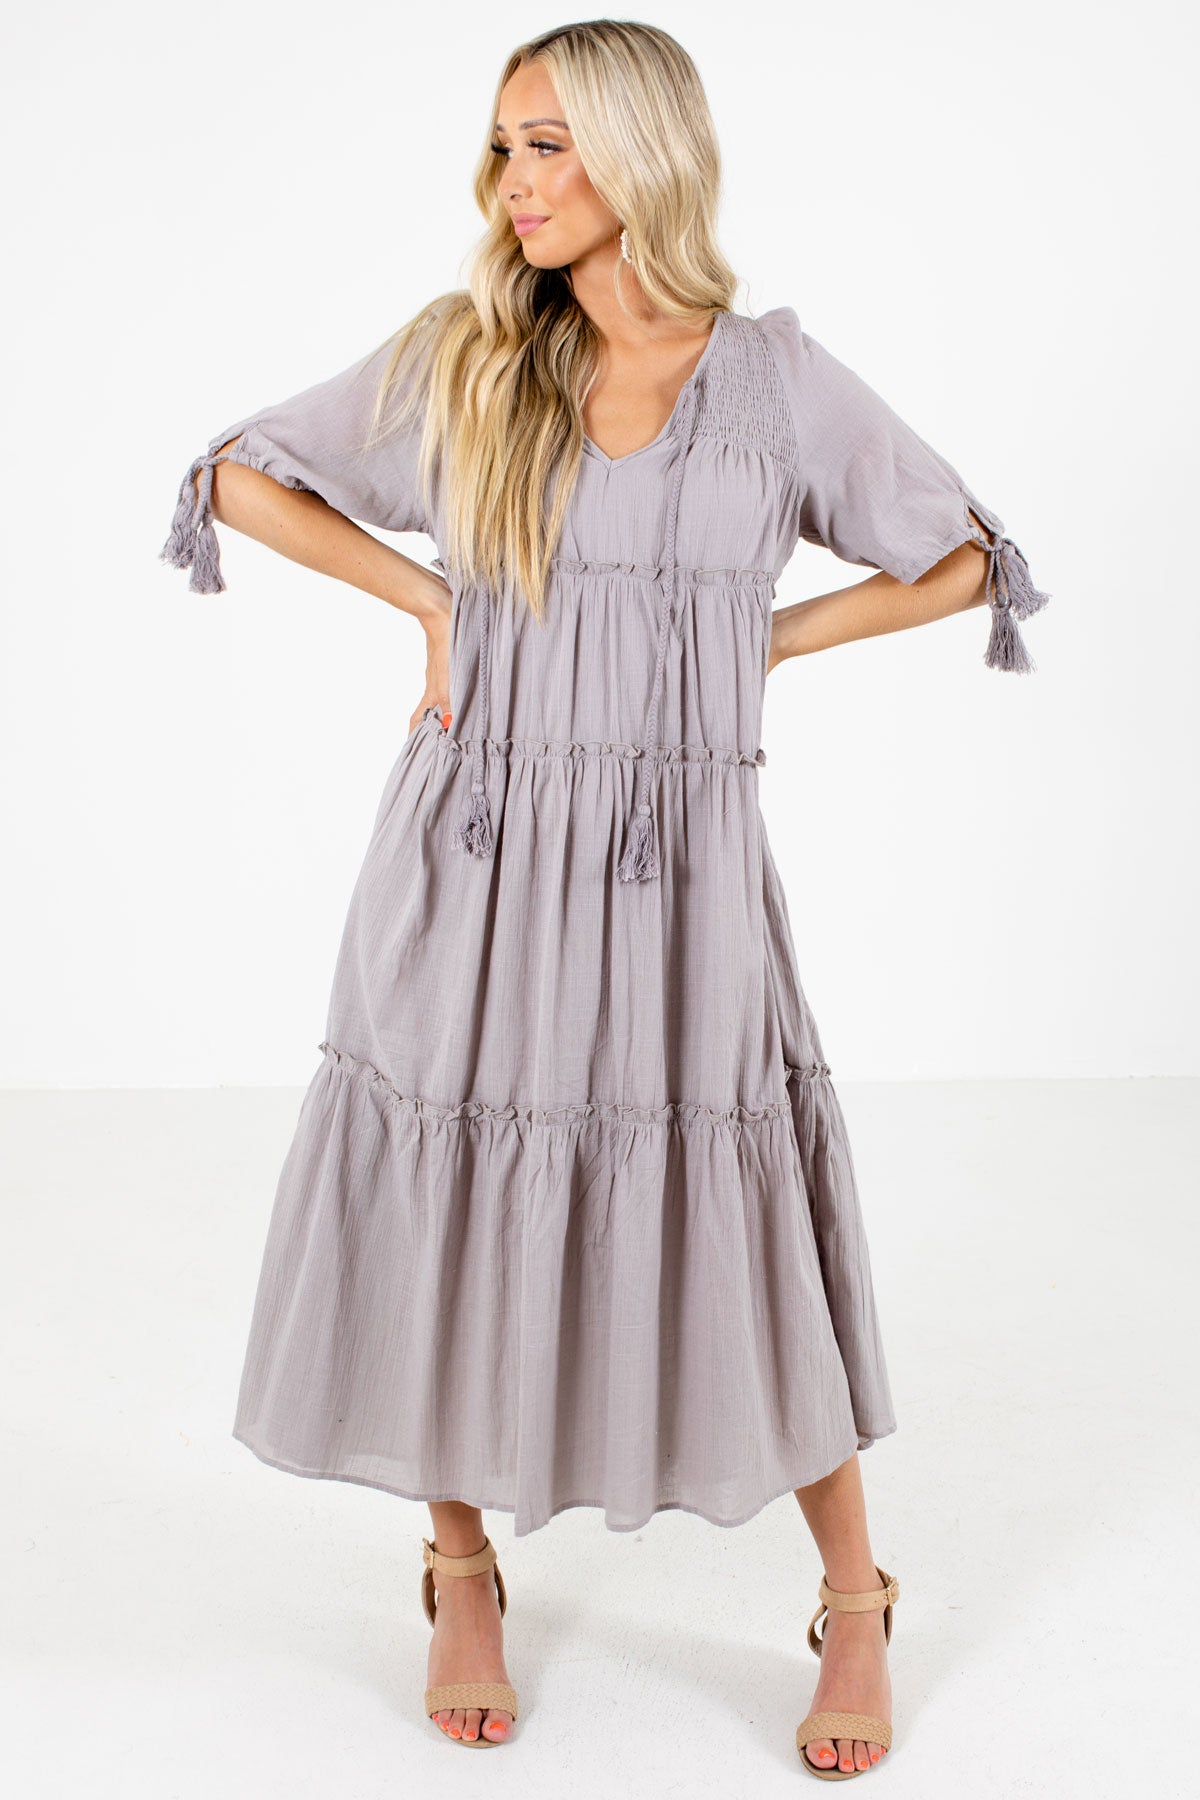 Gray Smocked Accented Boutique Maxi Dresses for Women